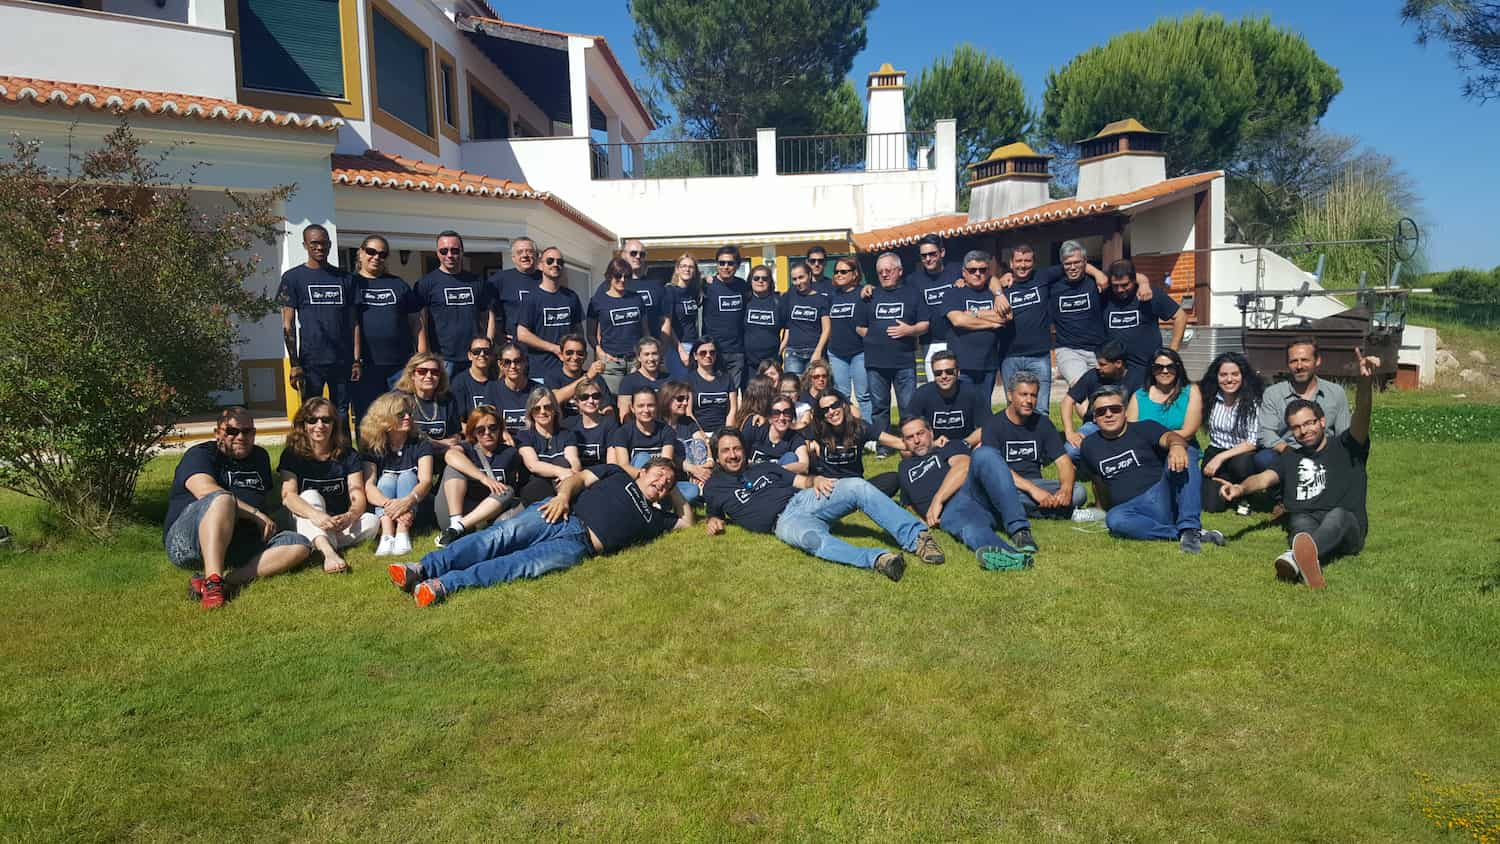 Grupo de Team Building